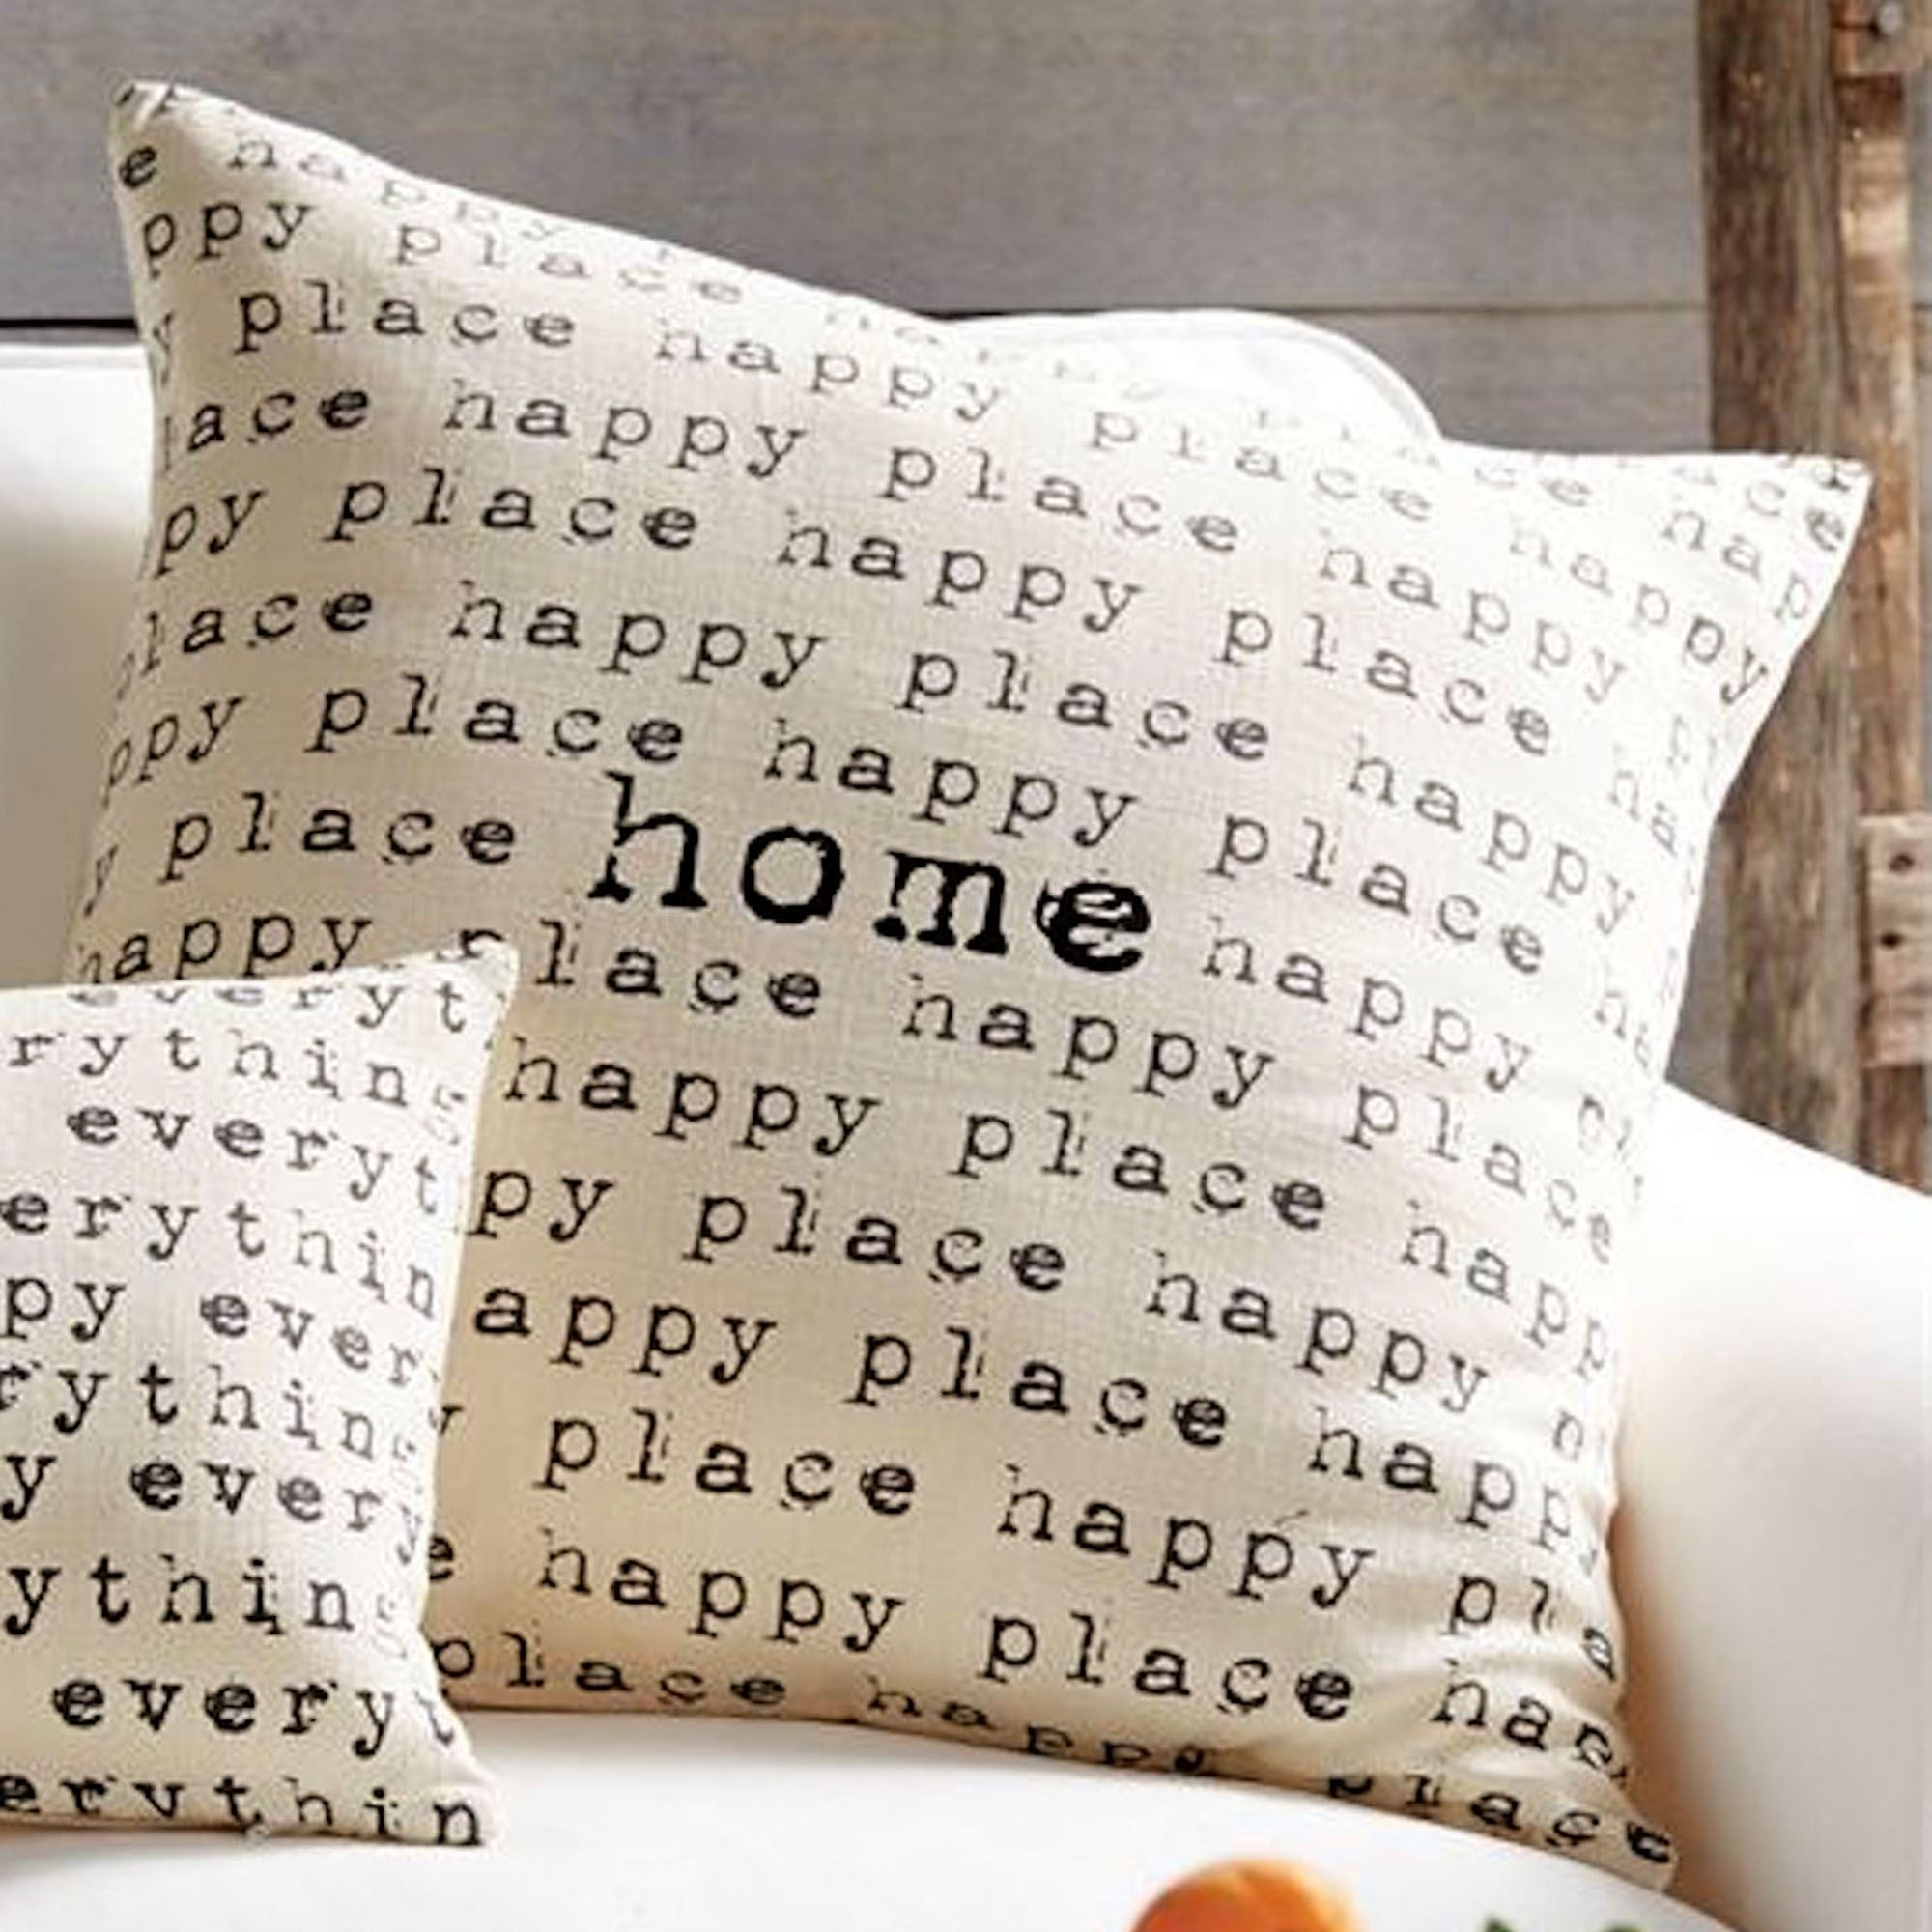 Happy Repeating Typewriter Font Word Decorative Pillows